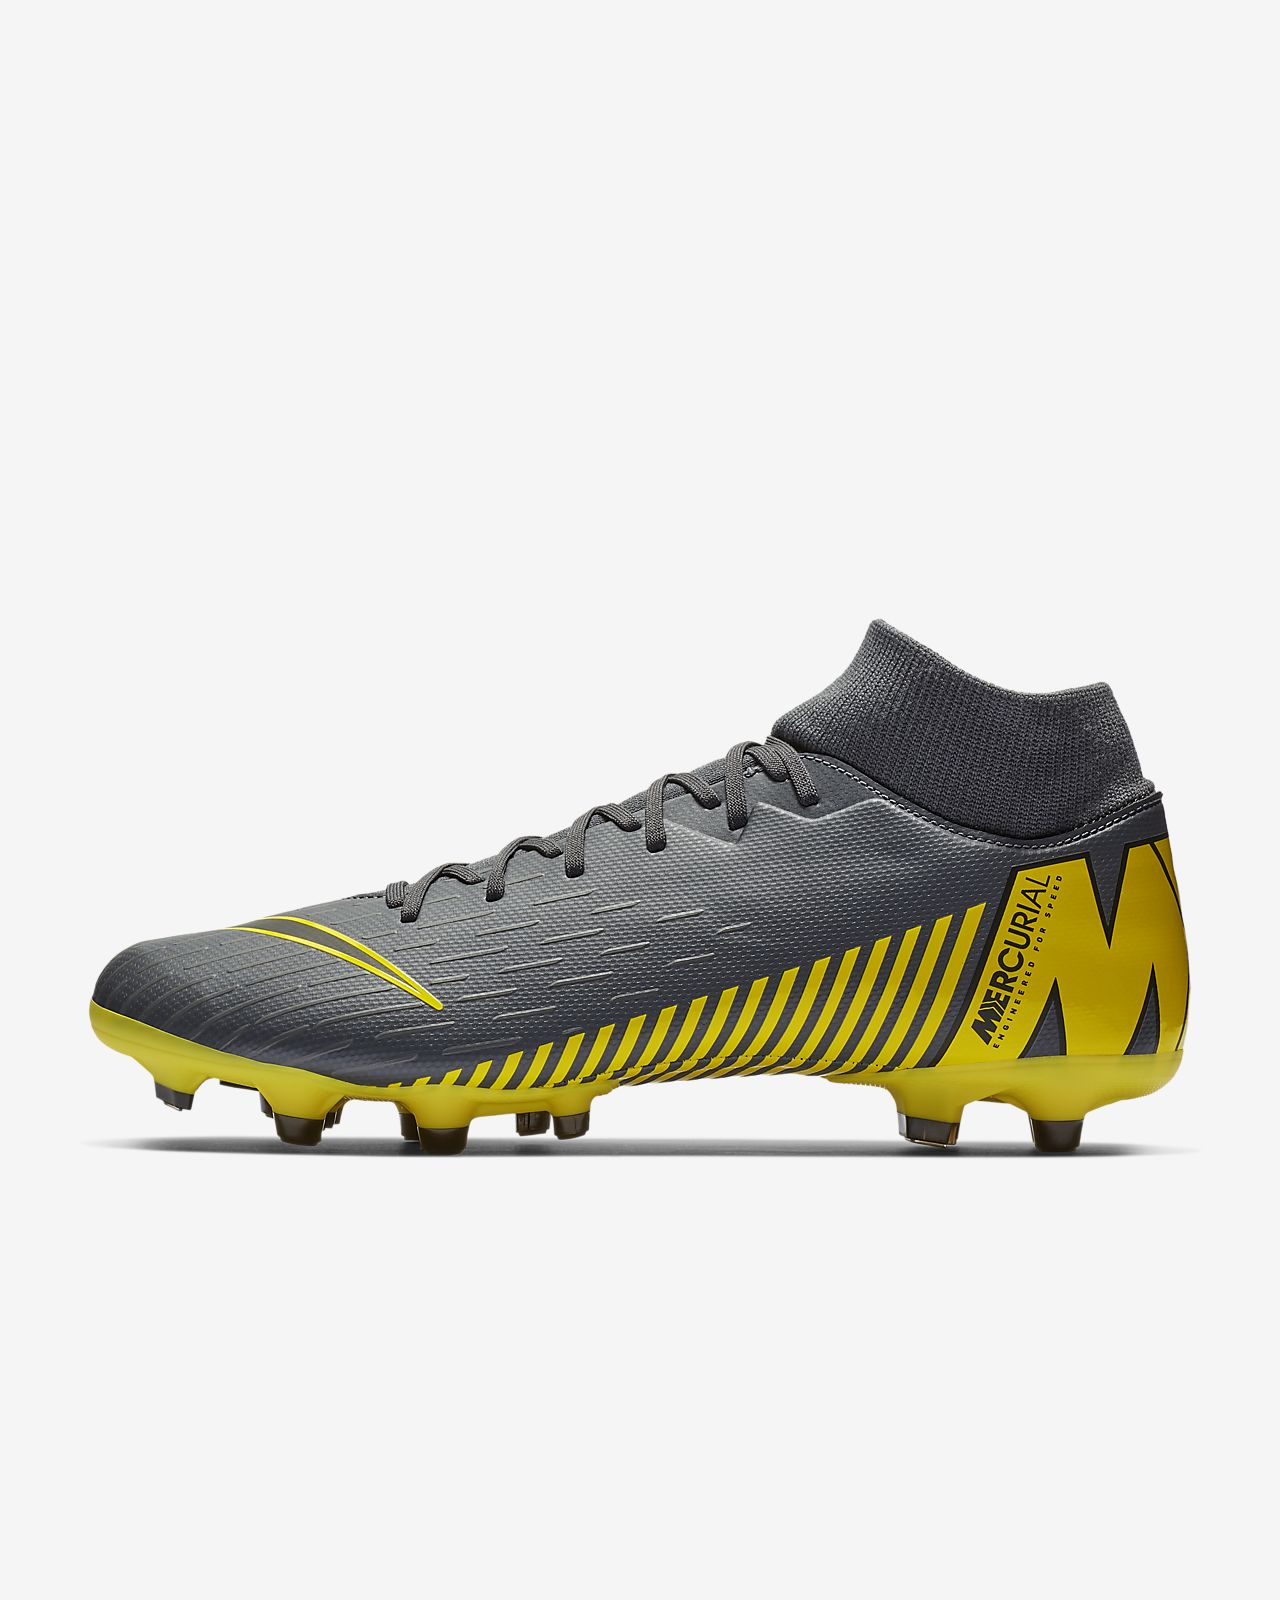 448366a62dac0 ... Calzado de fútbol para múltiples superficies Nike Mercurial Superfly 6  Academy MG